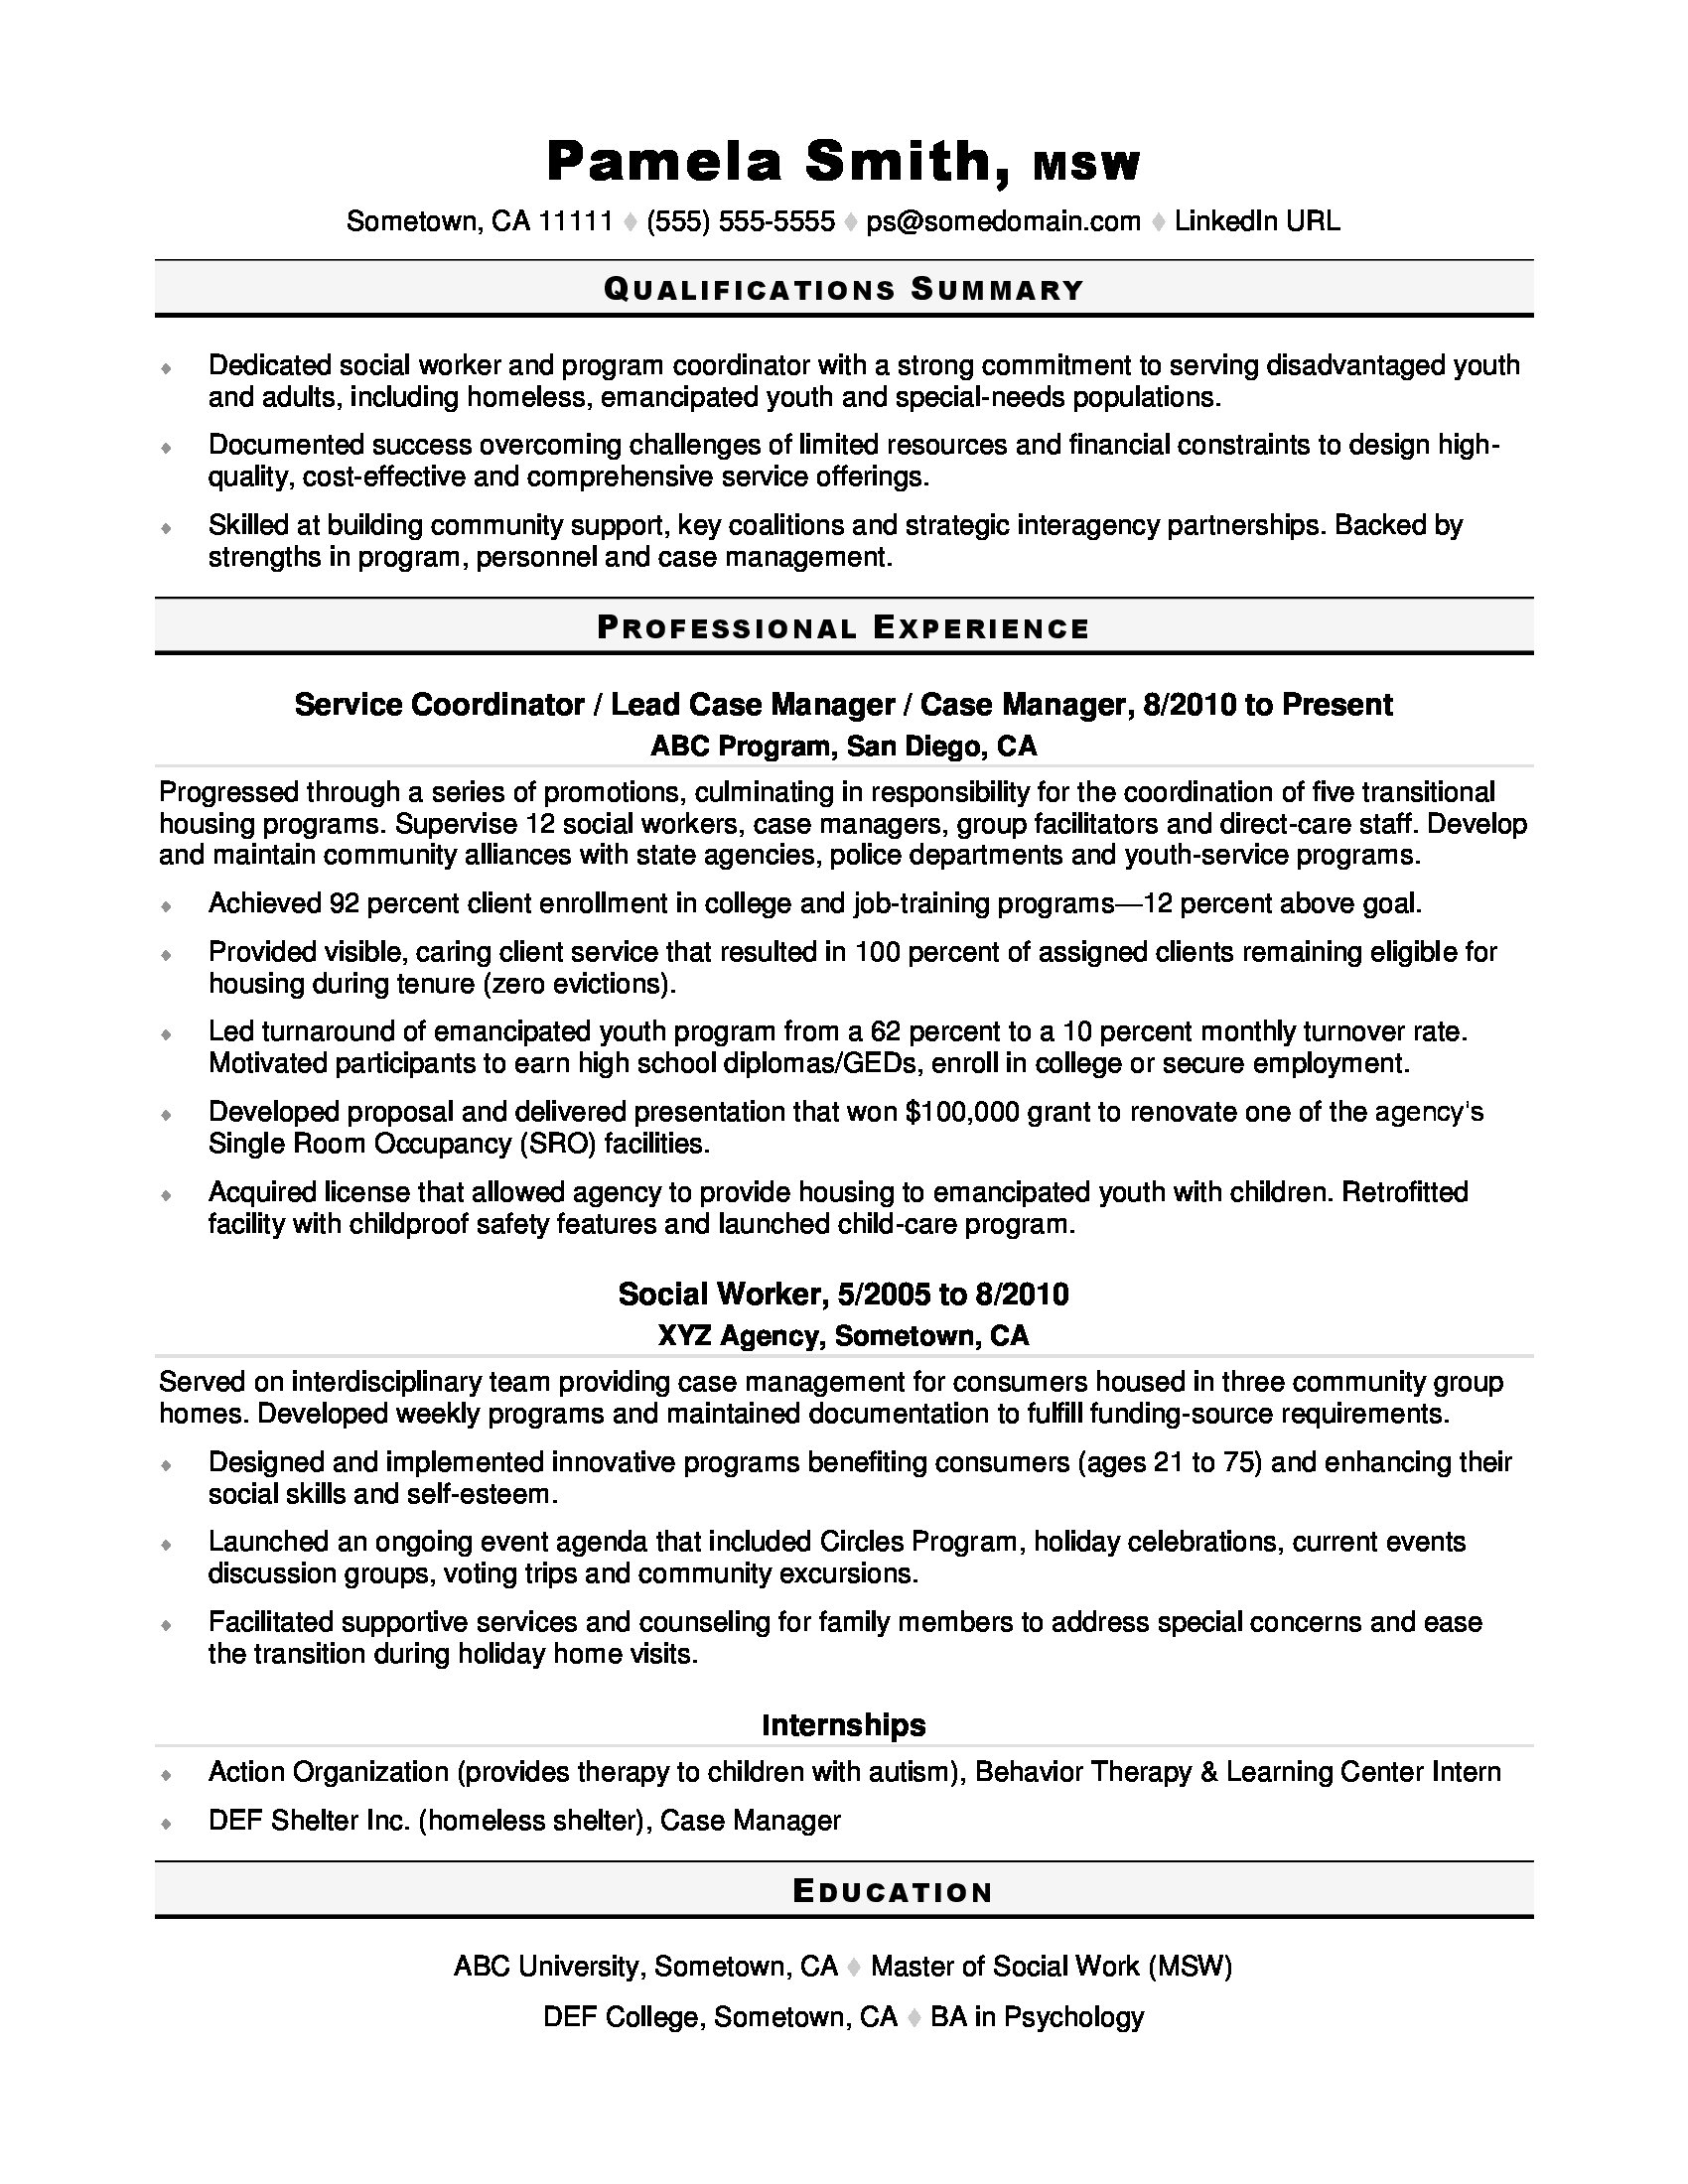 social worker resume sample monster community activist automotive technician science Resume Community Activist Resume